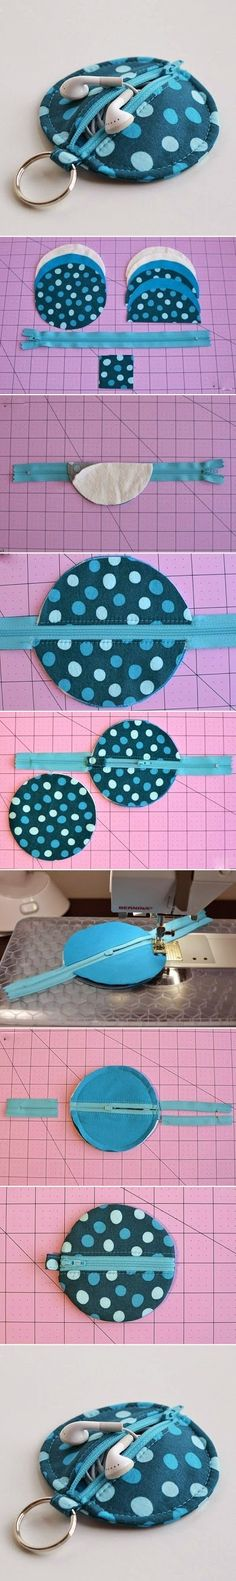 DIY Blue Polka Dot Earphone Case